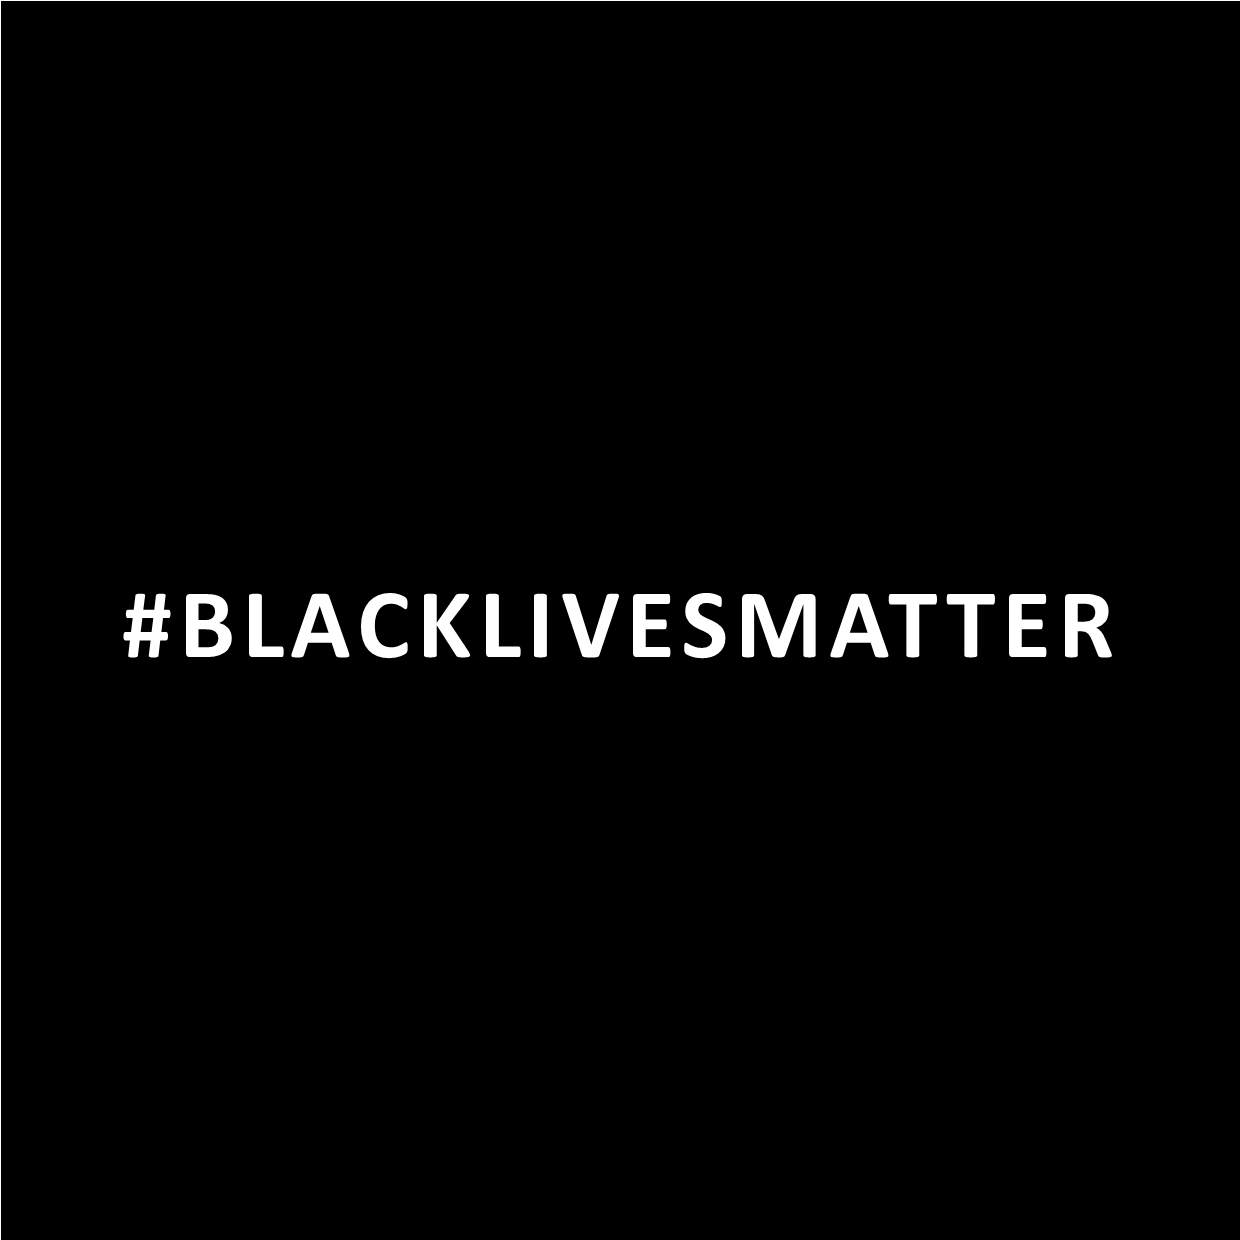 #blacklivesmatter appear on a black background